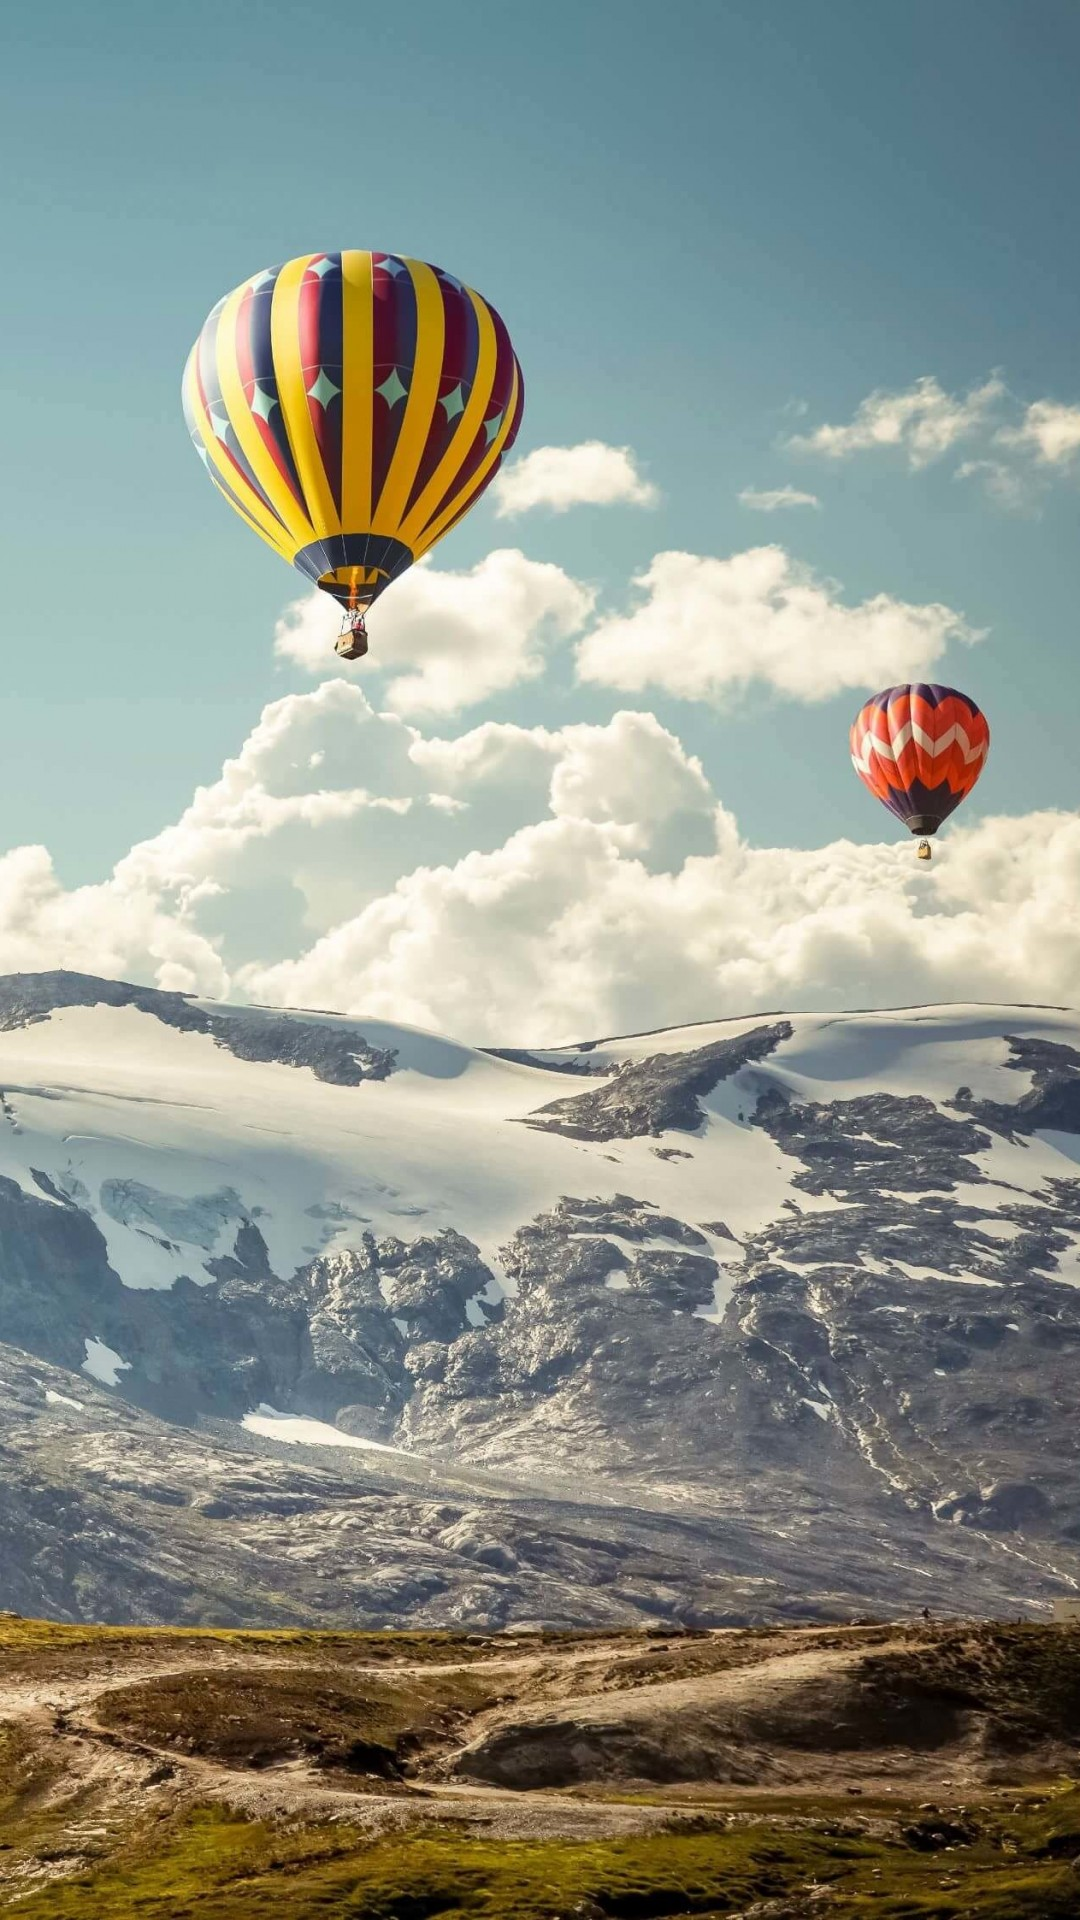 Hot Air Balloon Over the Mountain Wallpaper for HTC One